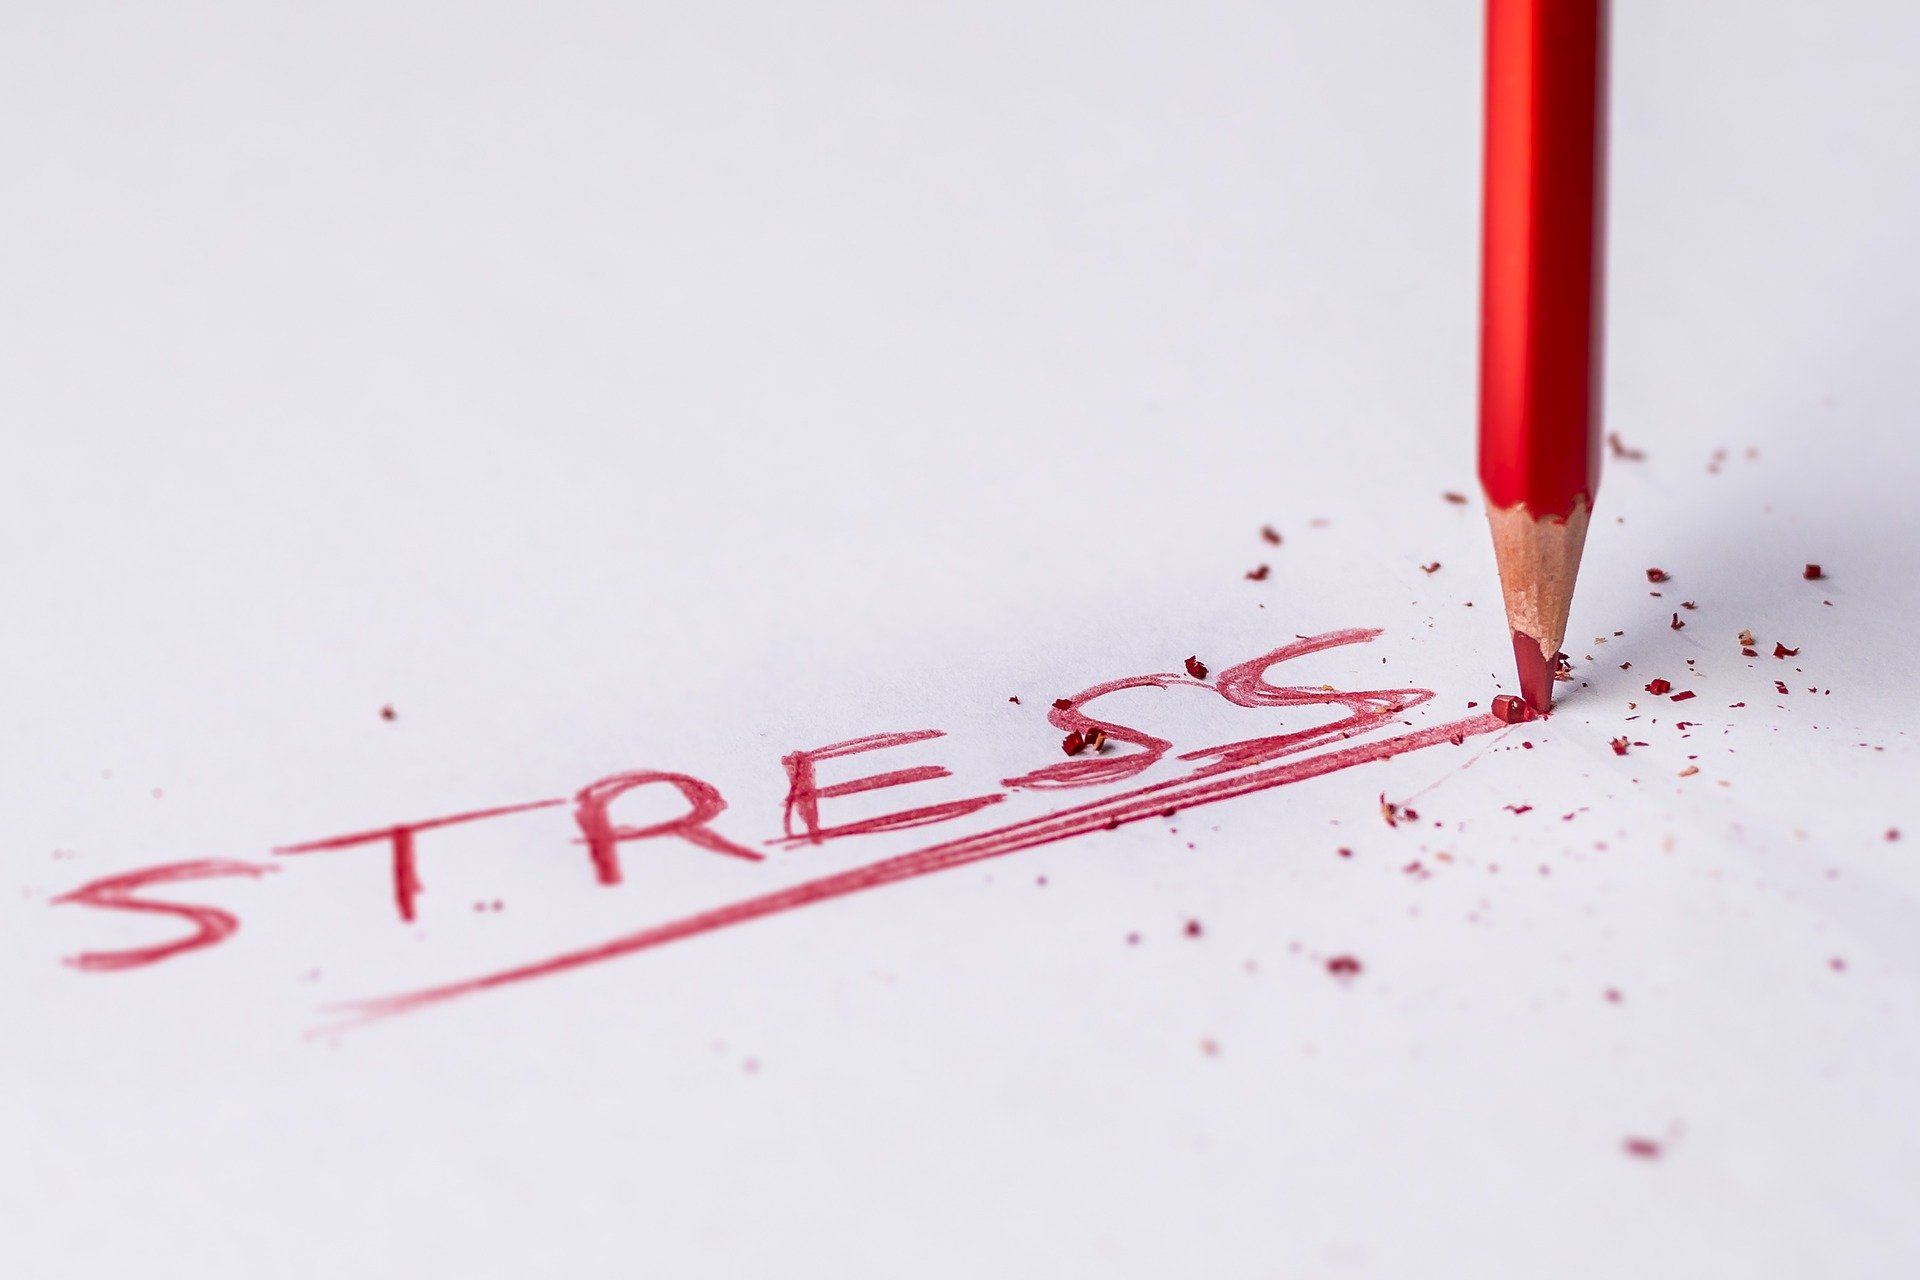 Stress written in red with red pencil next to the word